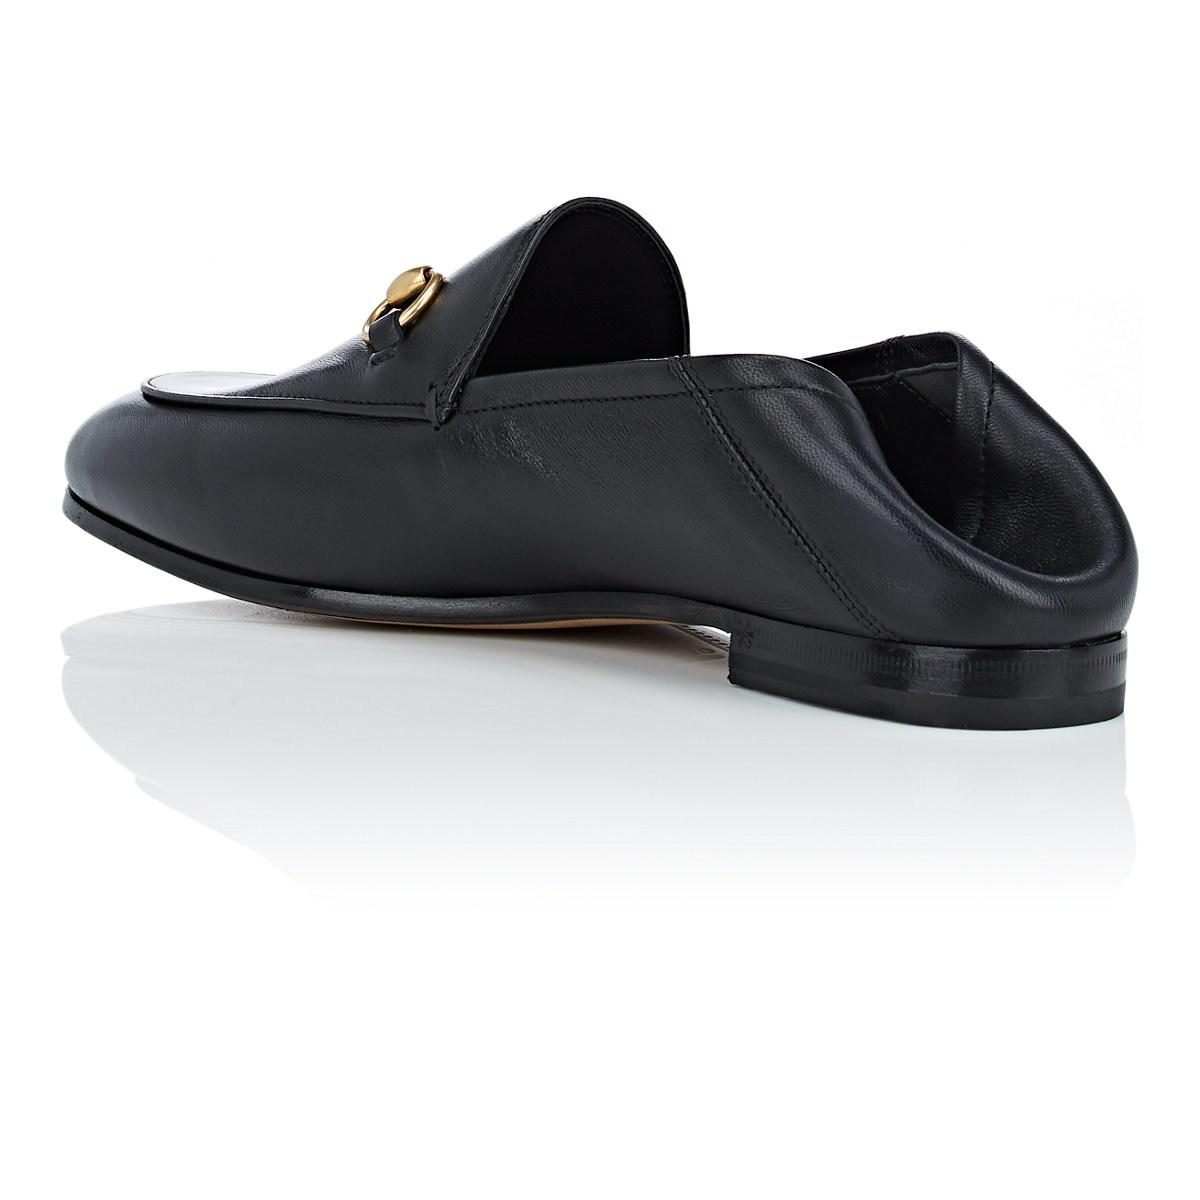 a7a53ea0735 Gucci - Black Brixton Leather Loafers - Lyst. View fullscreen